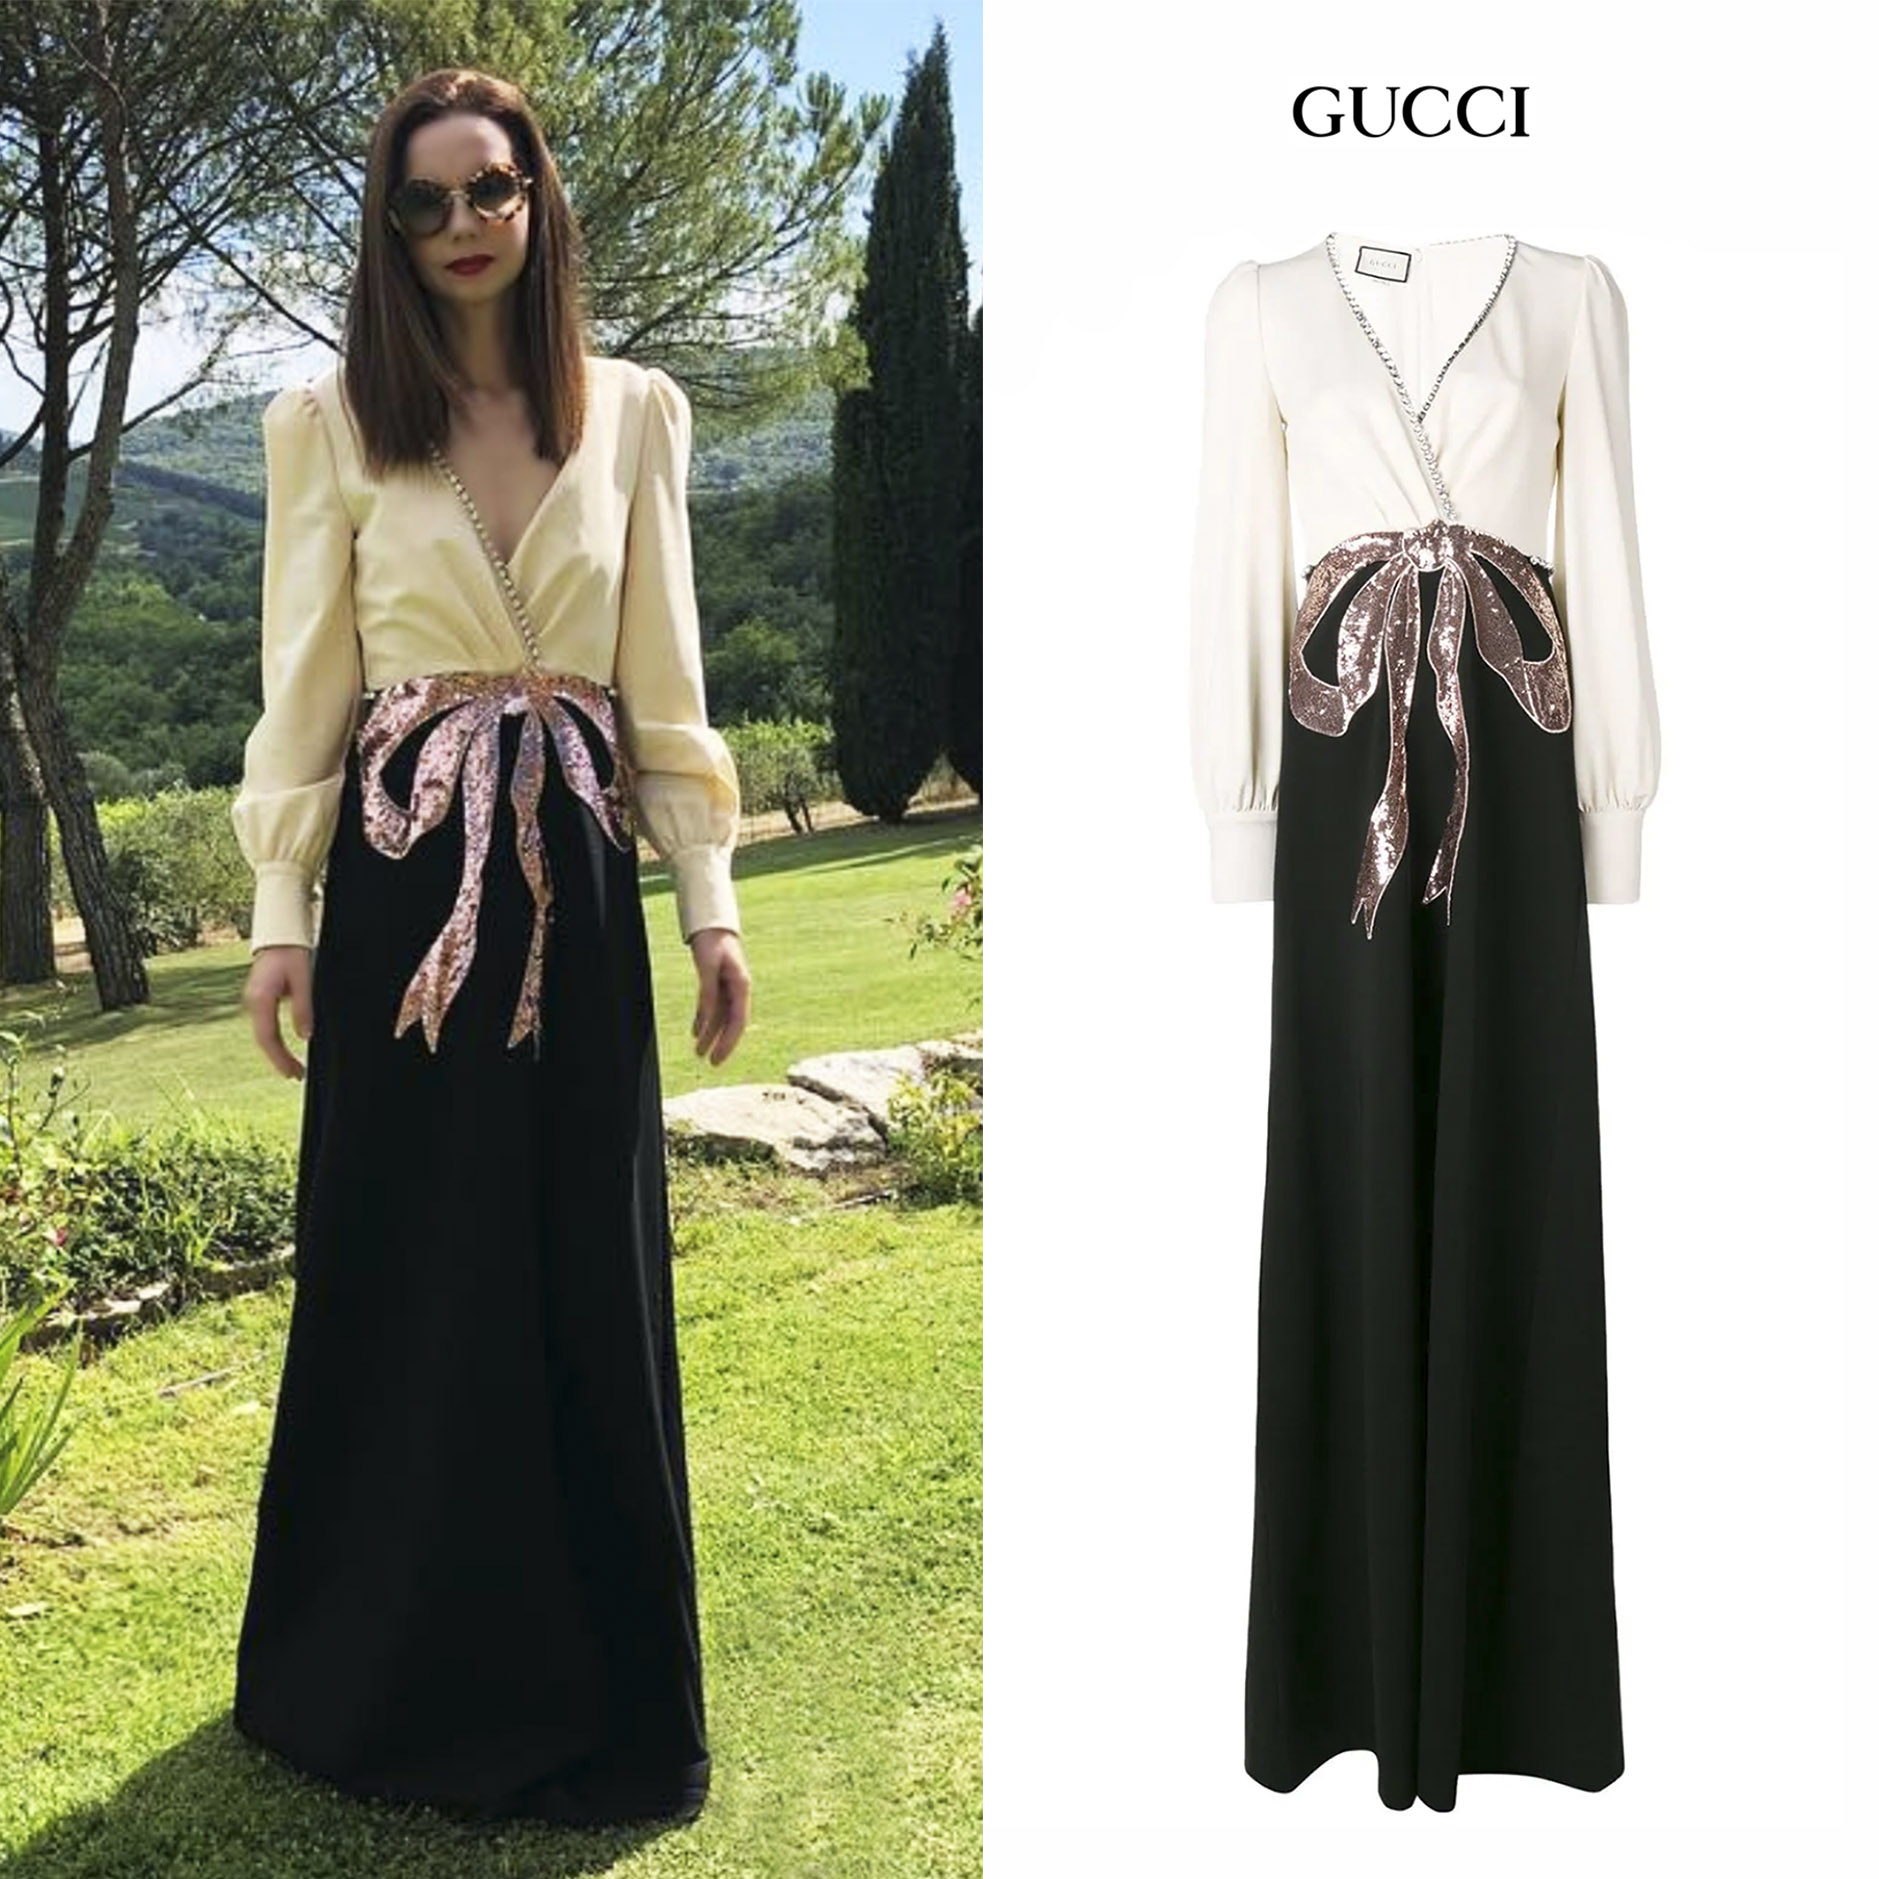 Marina_Achaval_Long_Sleeve_Crystal_Embellished_Gucci_Gown_Vestido.jpg